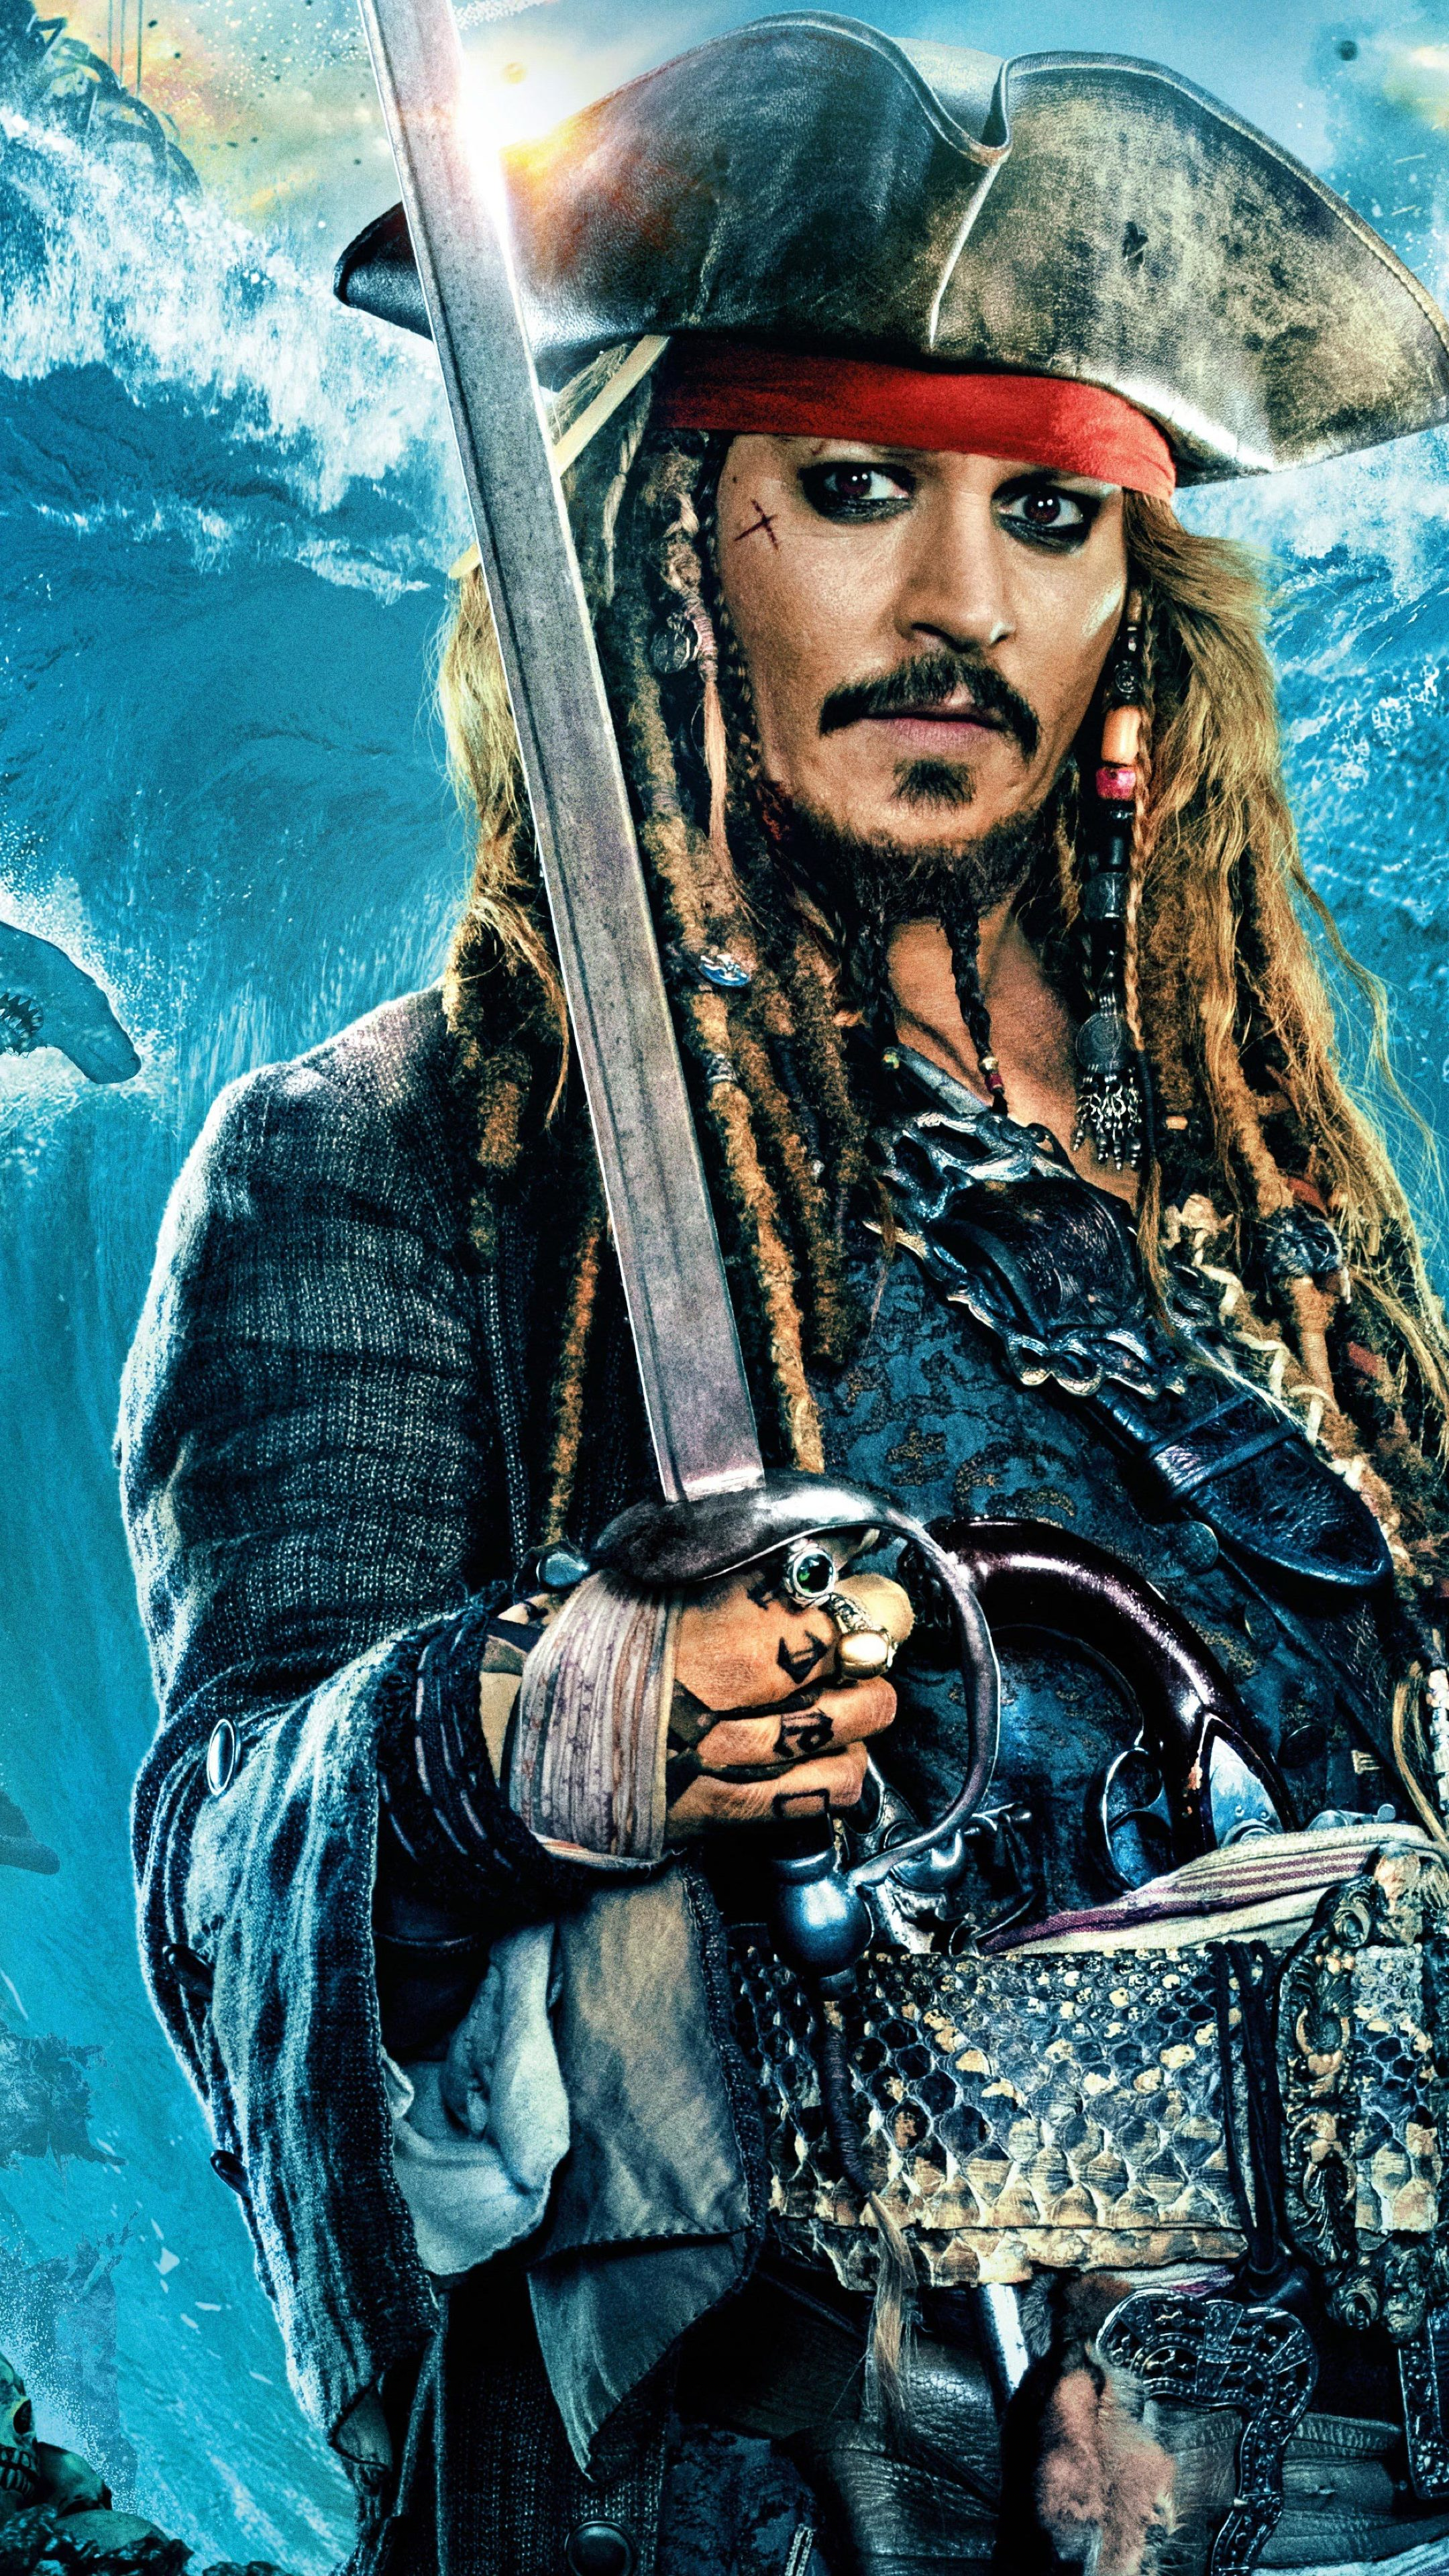 2160x3840 Johnny Depp As Jack Sparrow In Pirates Of The Caribbean Dead Men Tell No Tales Sony Xperia X Xz Z5 Premium Wallpaper Hd Movies 4k Wallpapers Images Photos And Background